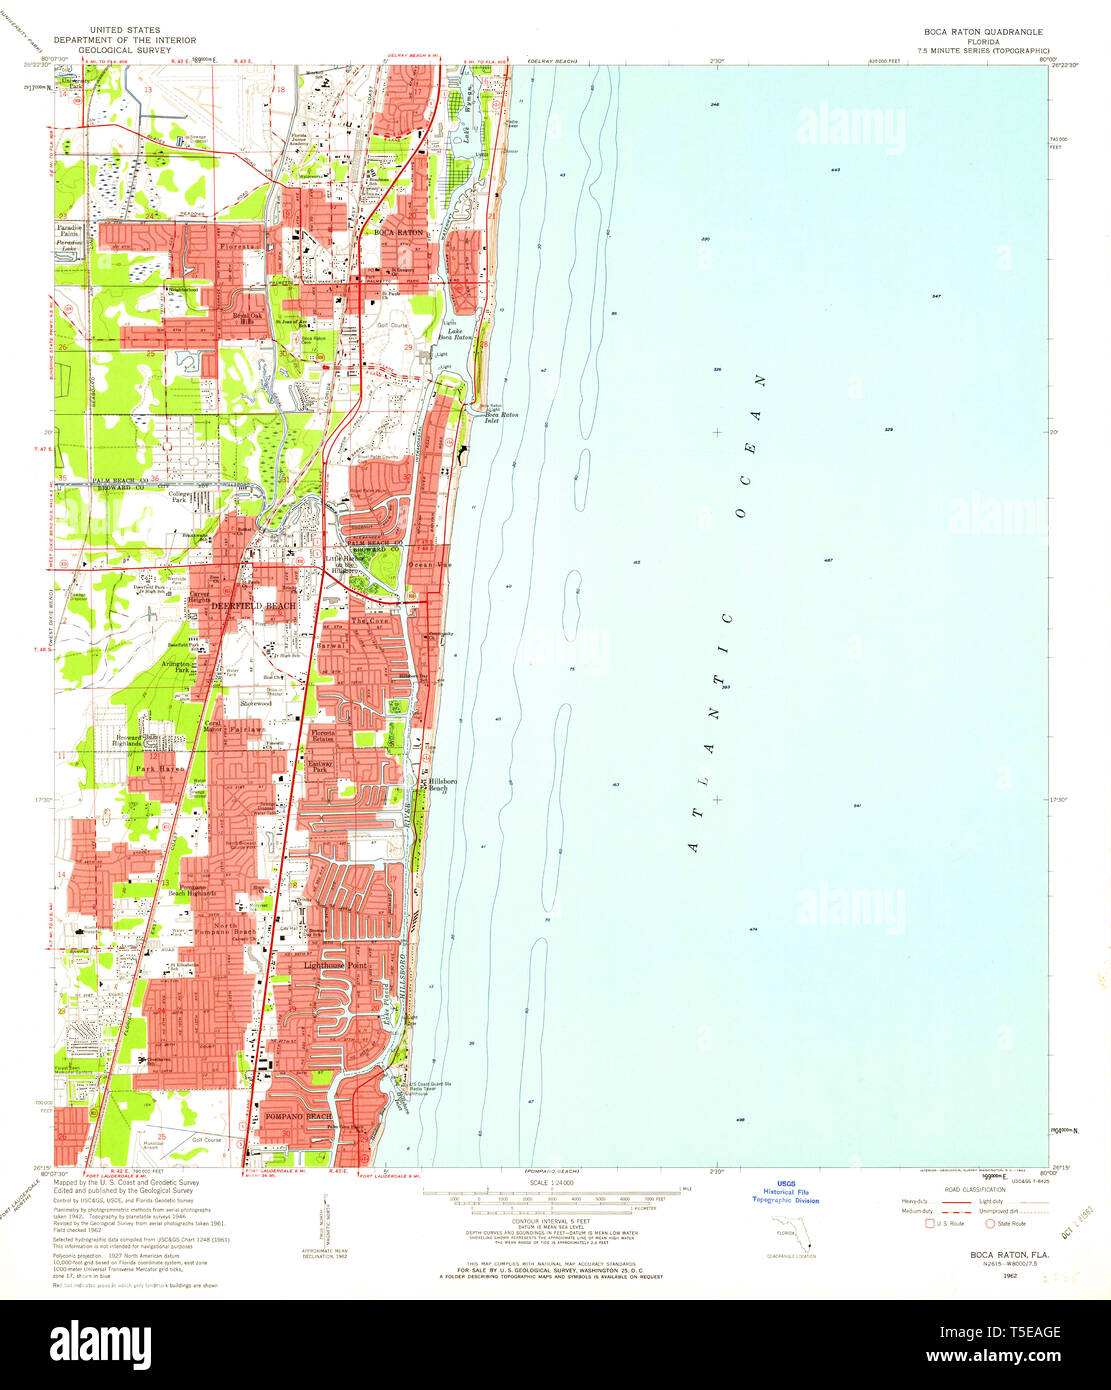 Map Of Florida Showing Boca Raton.Usgs Topo Map Florida Fl Boca Raton 345233 1962 24000 Restoration